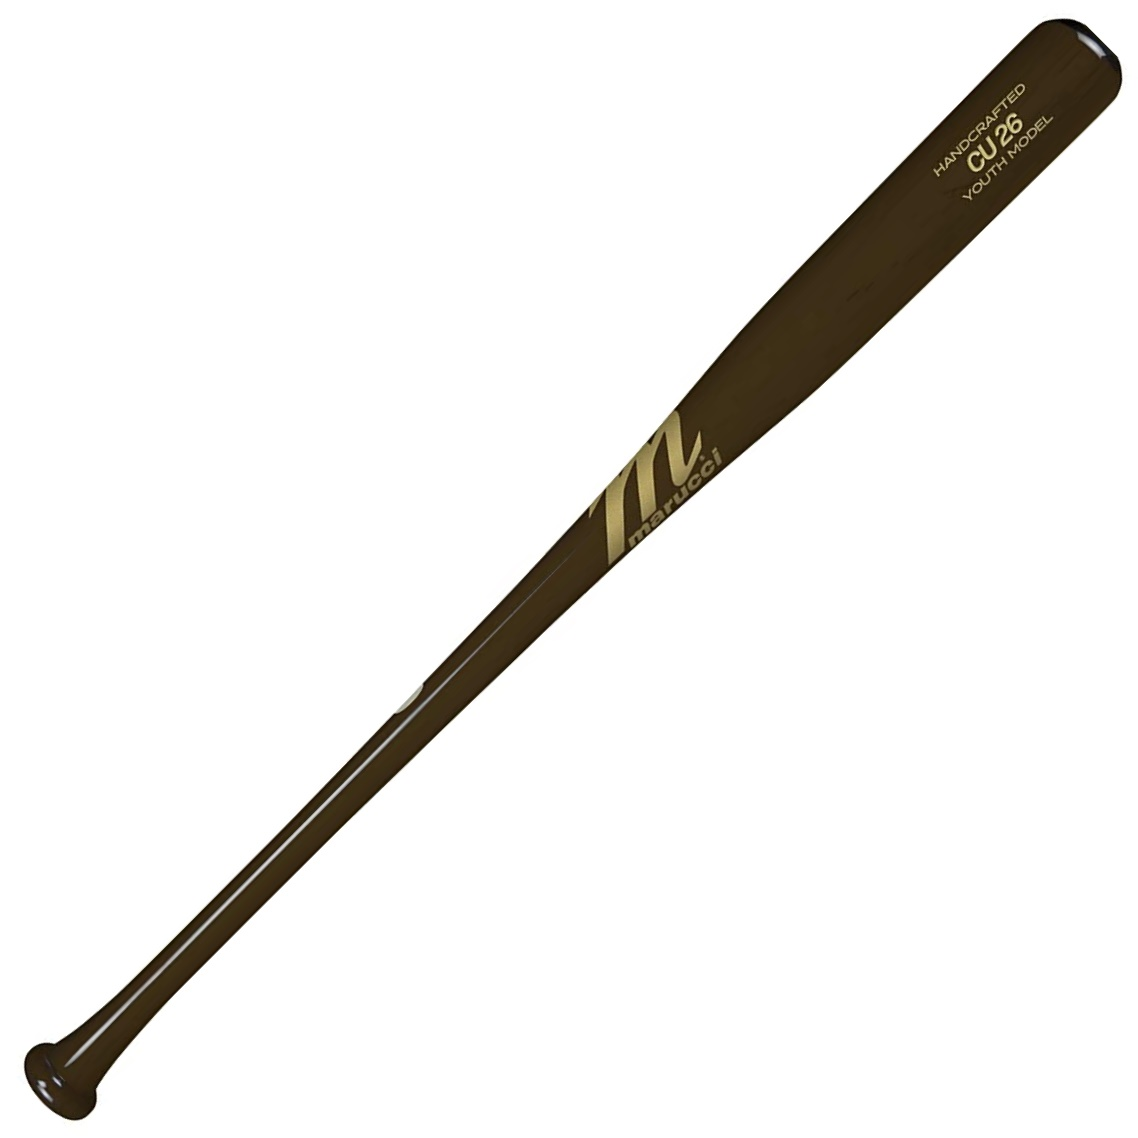 marucci-chase-utley-youth-model-wood-baseball-bat-30-inch MYVE2CU26-CHL-30   <p>2019 Model MYVE2CU26-CHL-26 Consistency And Craftsmanship Commitment To Quality And Understanding